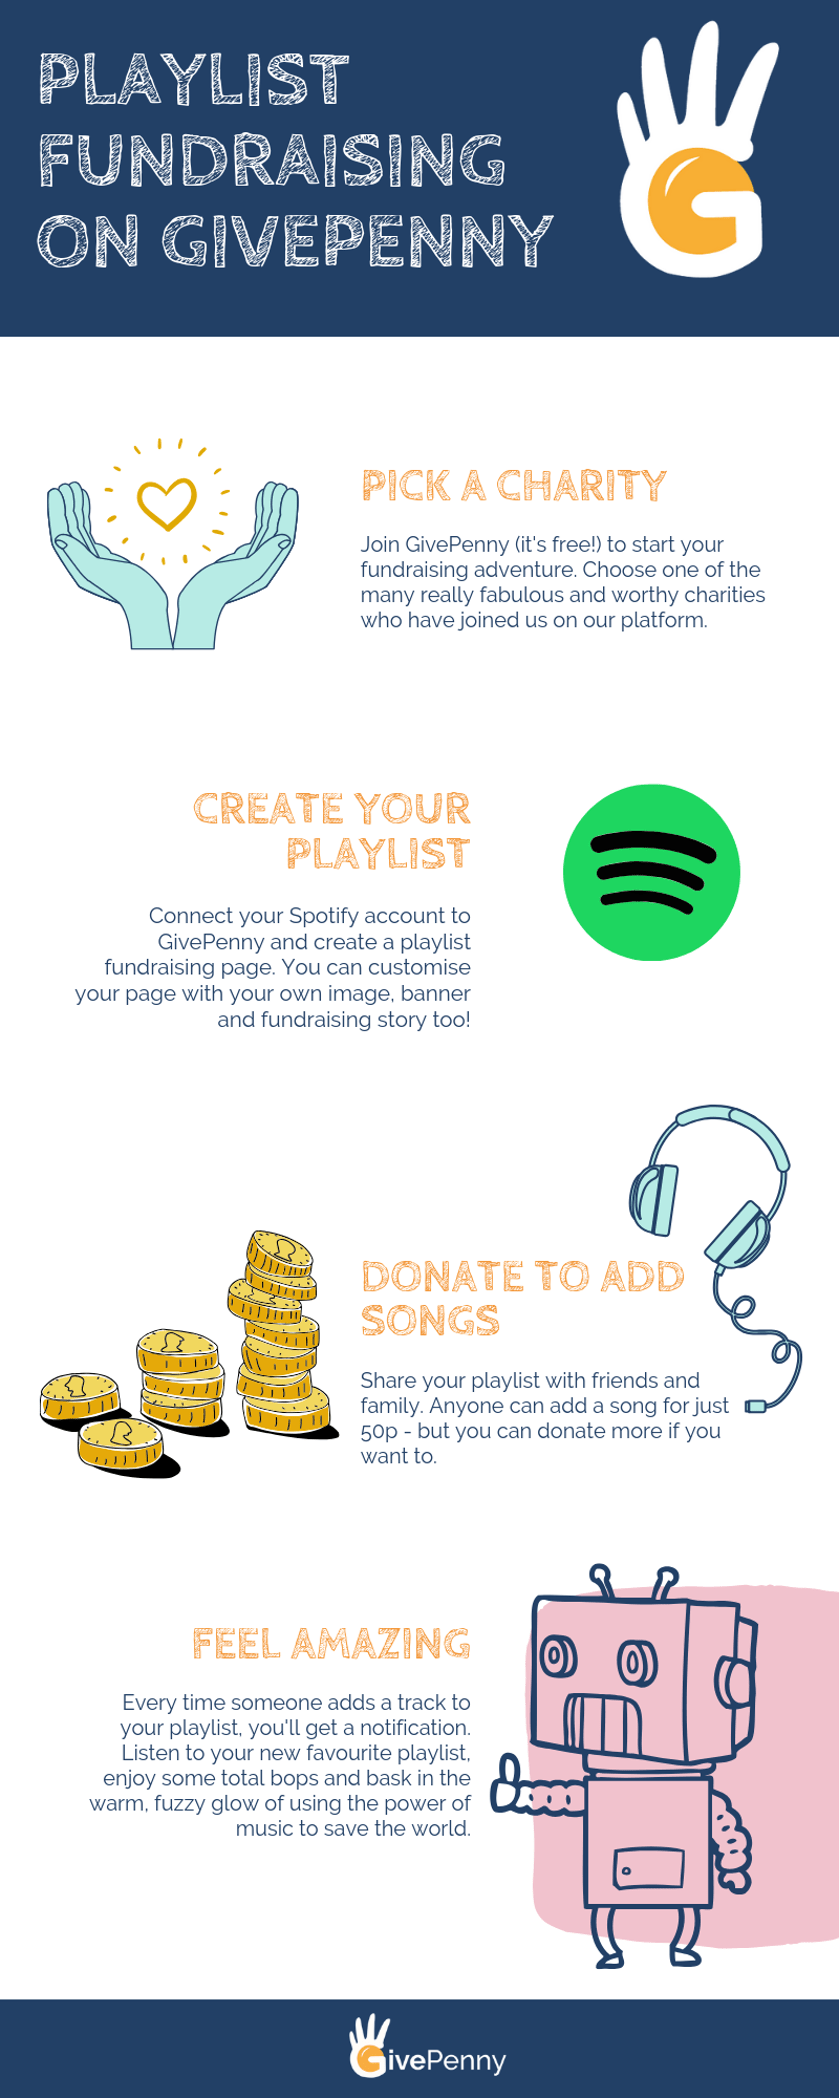 GivePenny lets you fundraise by adding songs to Spotify